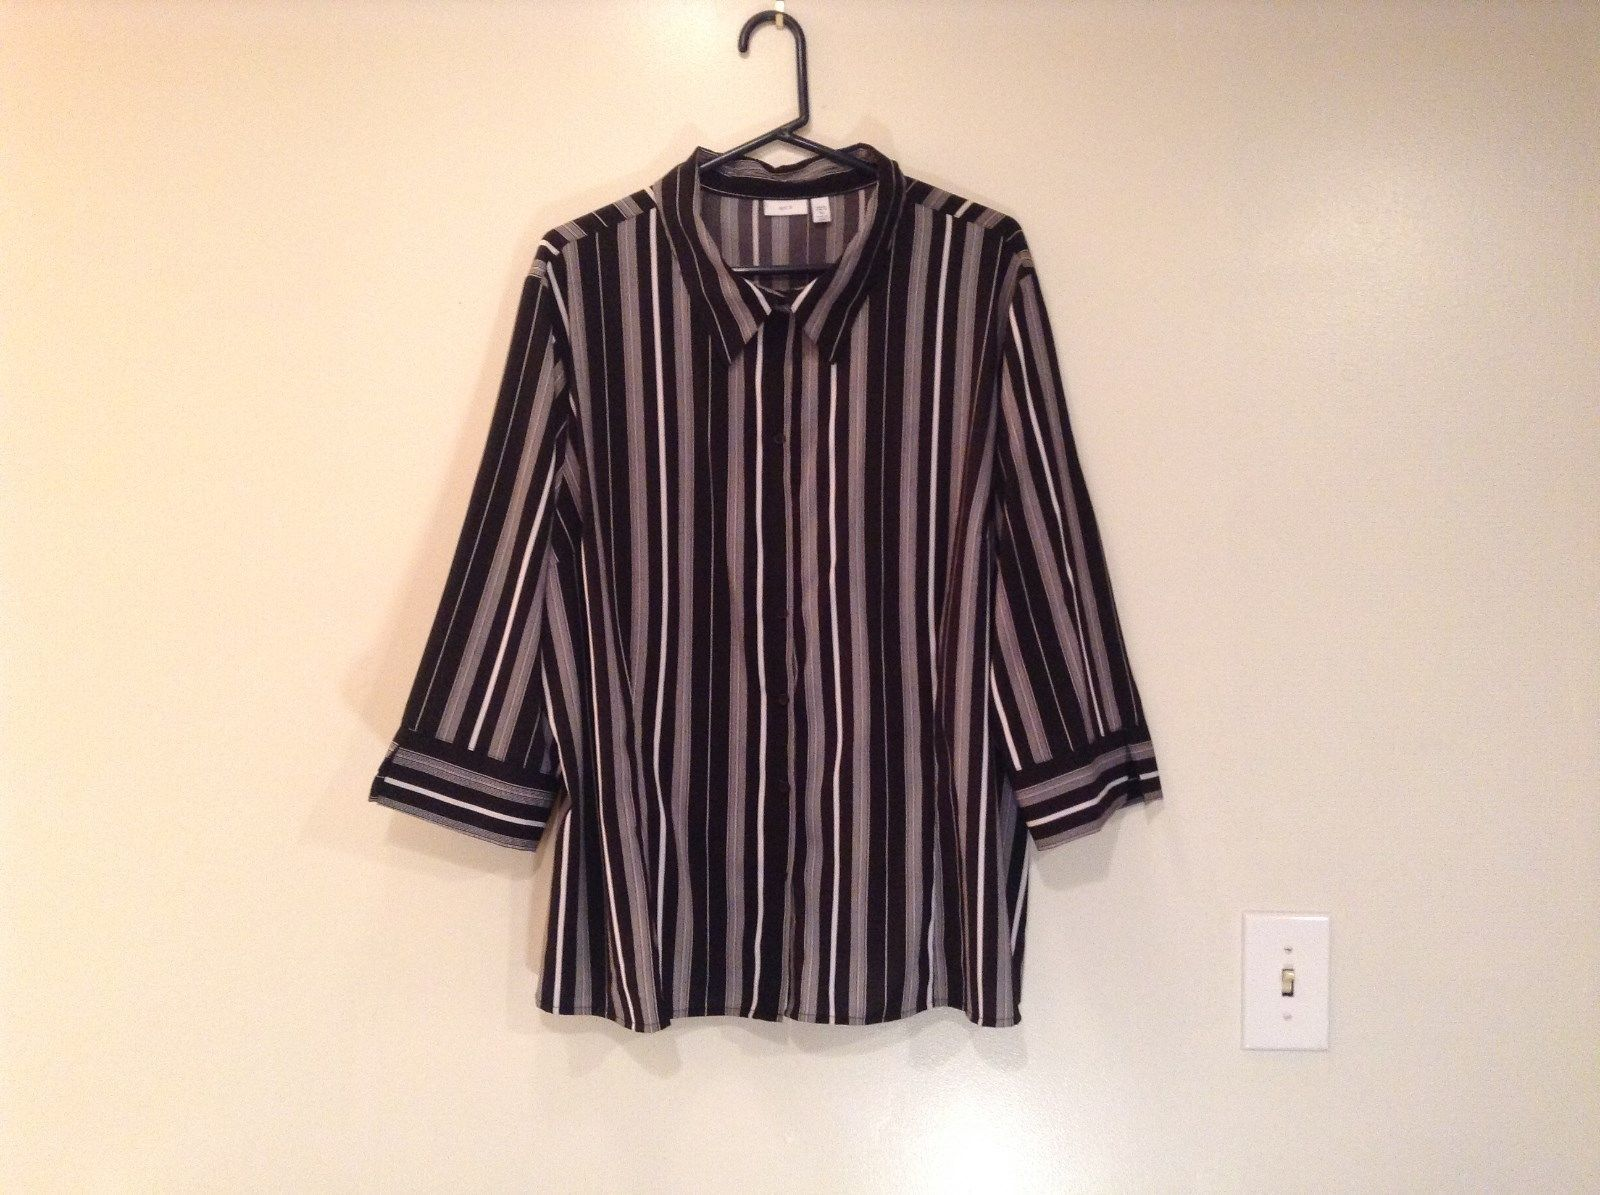 Apt 9 Size 3X Three Quarter Length Sleeves Button Down Shirt Black White Stripes